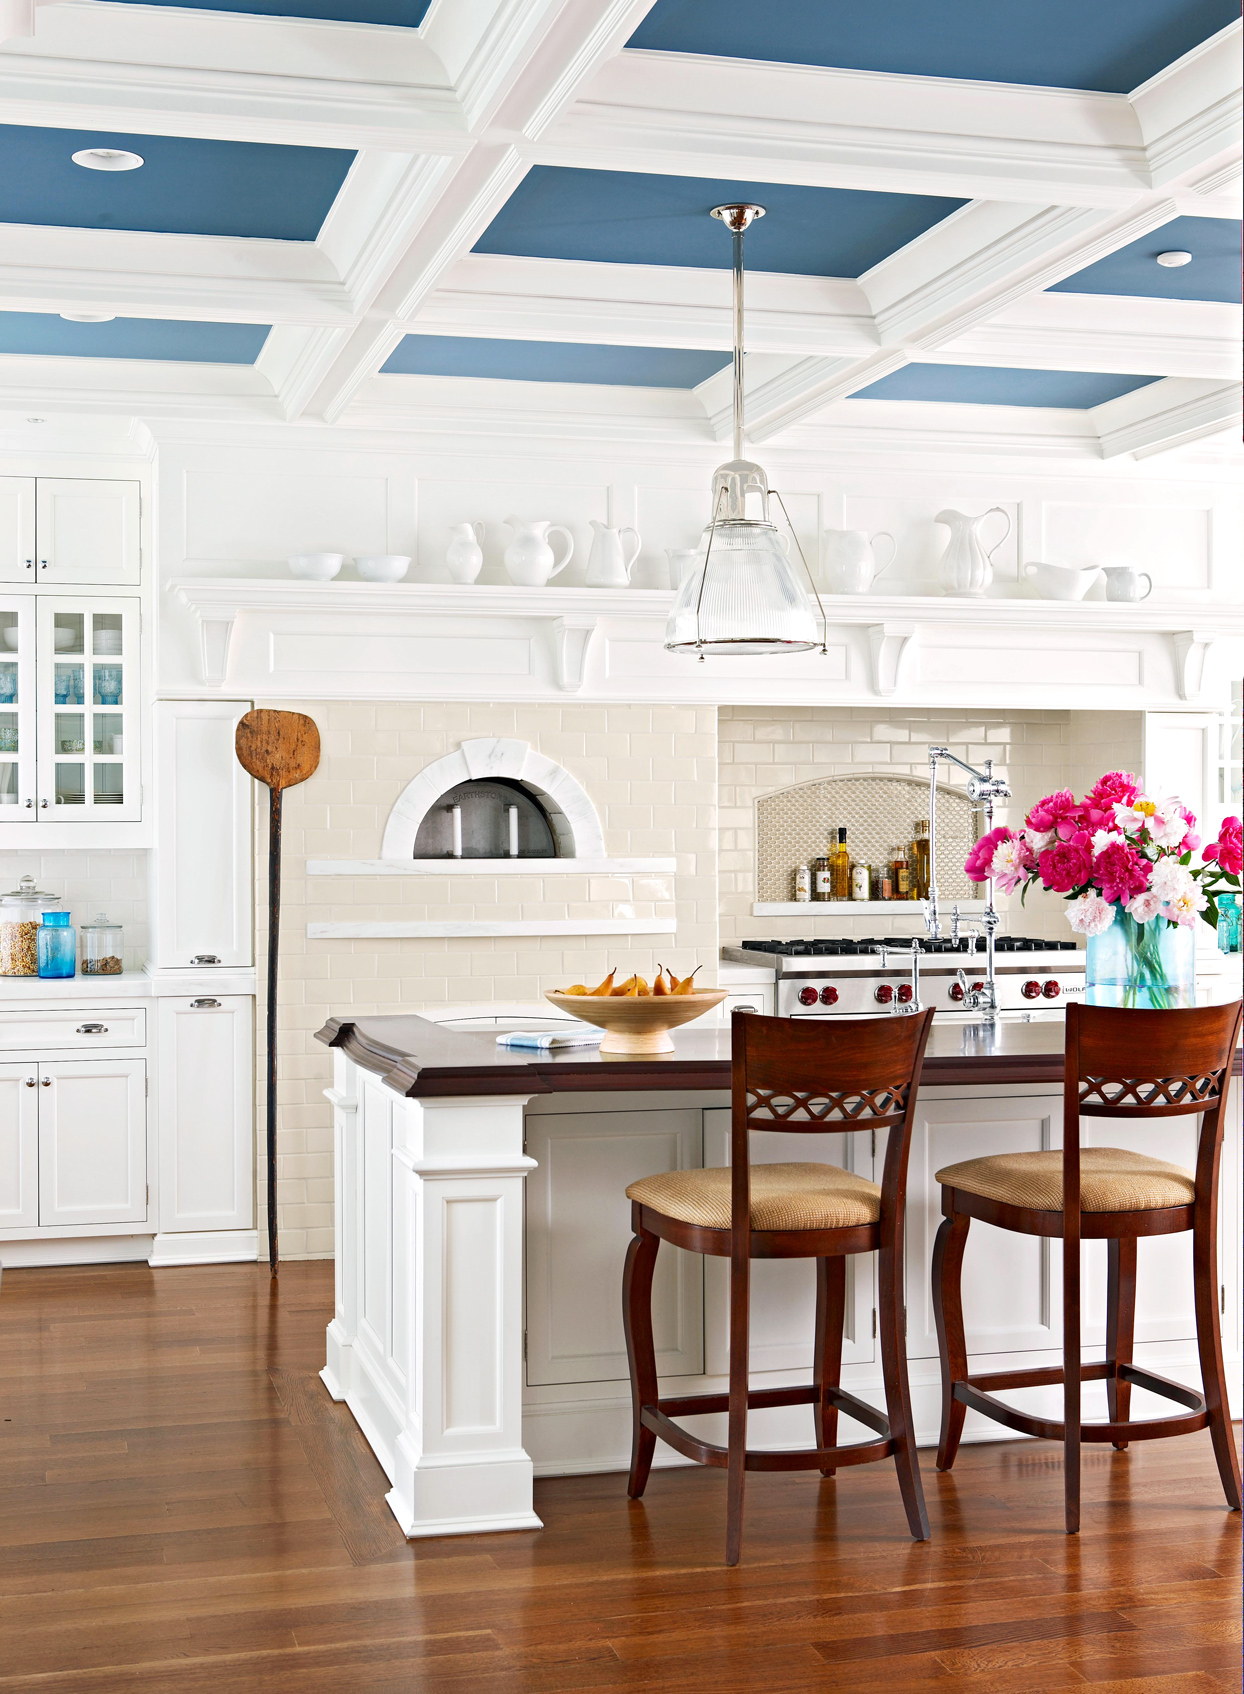 white kitchen with blue ceiling